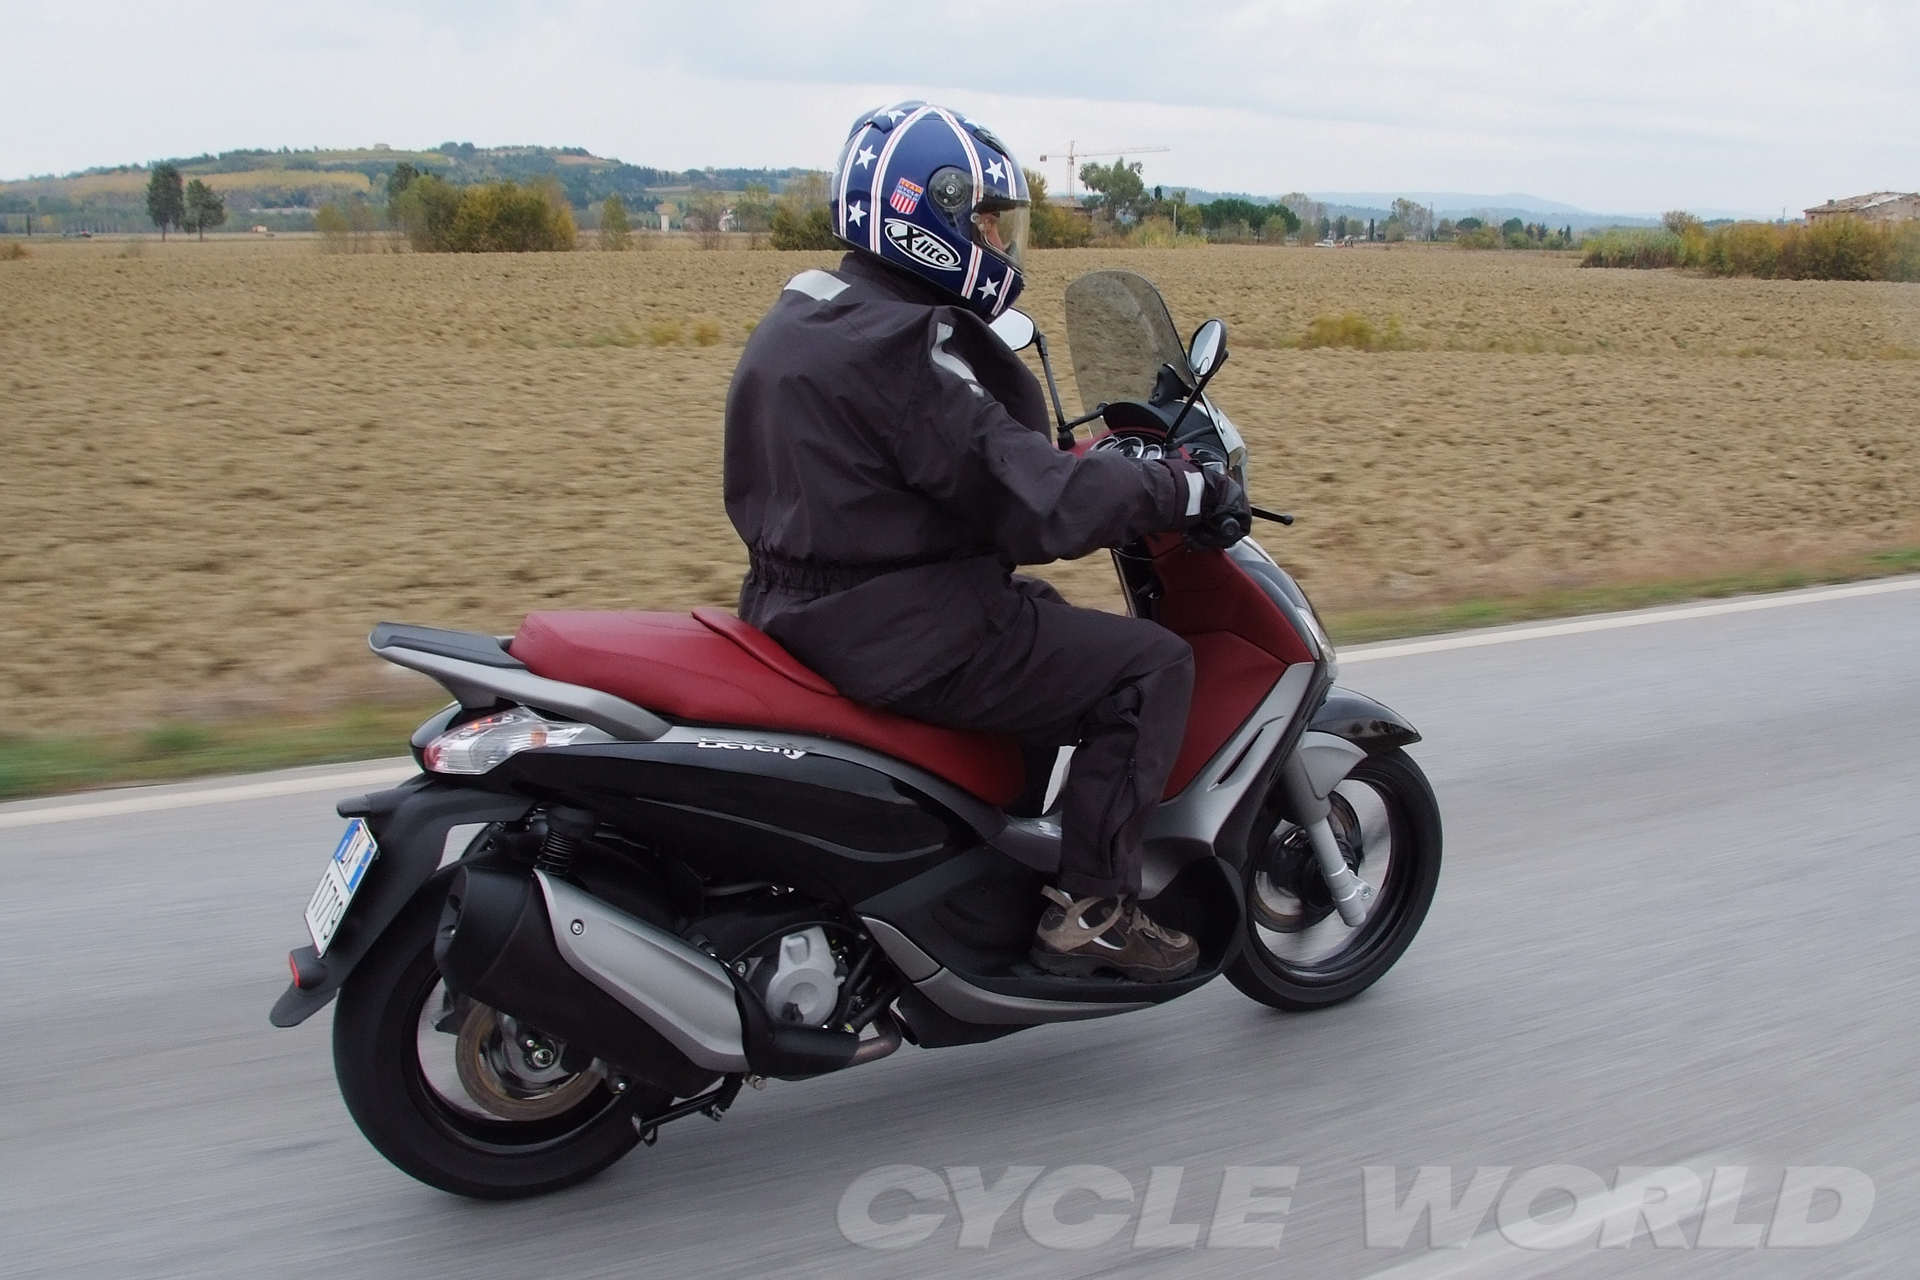 piaggio beverly - review and photos